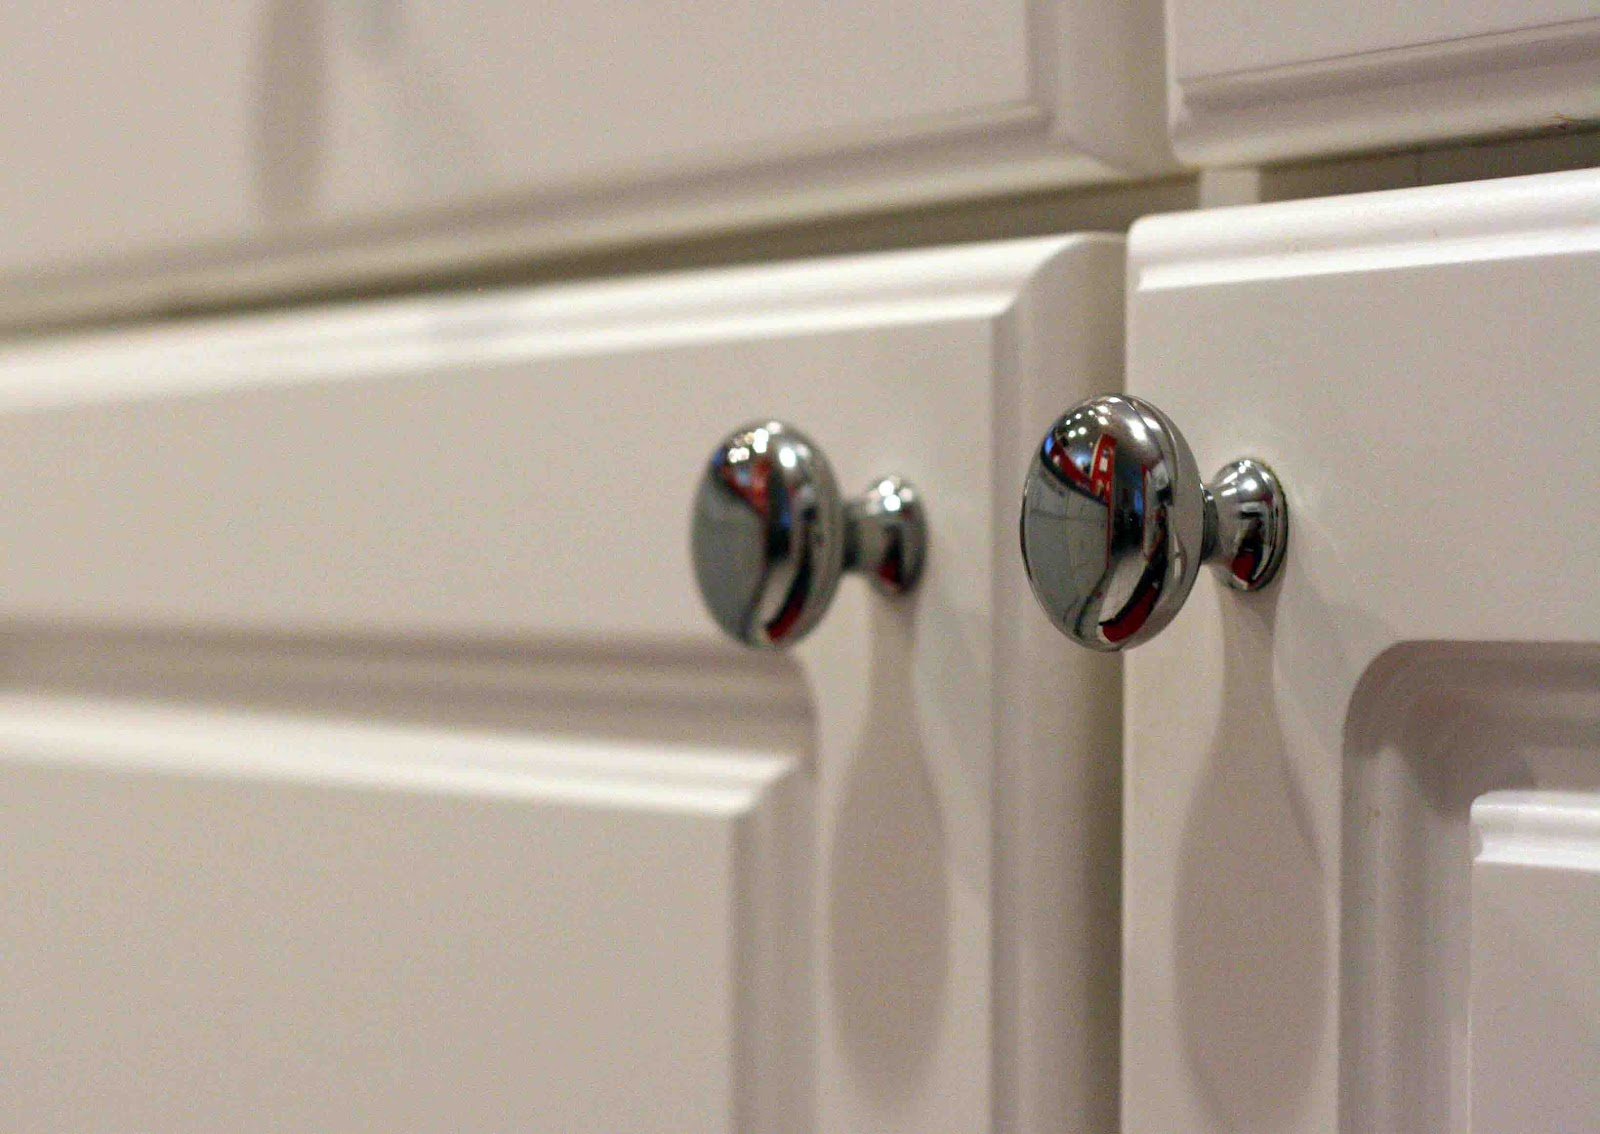 Handles And Knobs For Kitchen Cabinets Michael Nash Design Build And Homes Fairfax Virginia